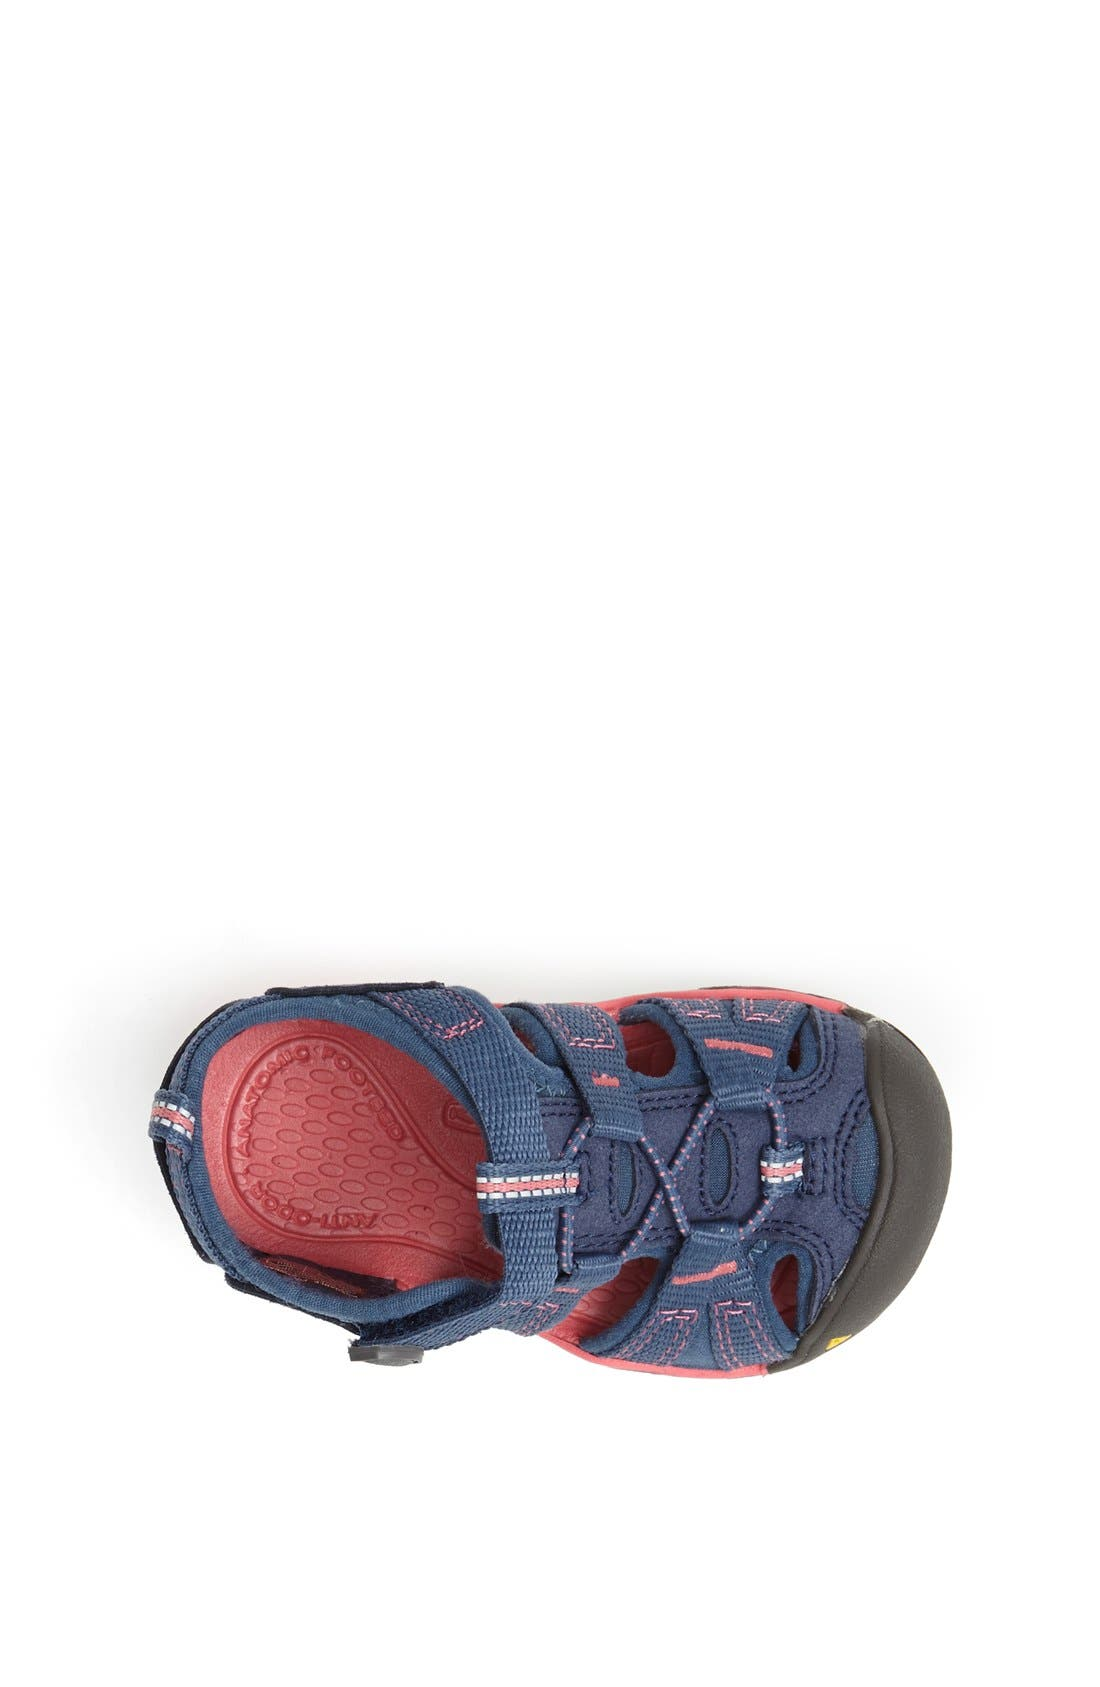 Alternate Image 3  - Keen 'Seacamp II' Waterproof Sandal (Baby & Walker)